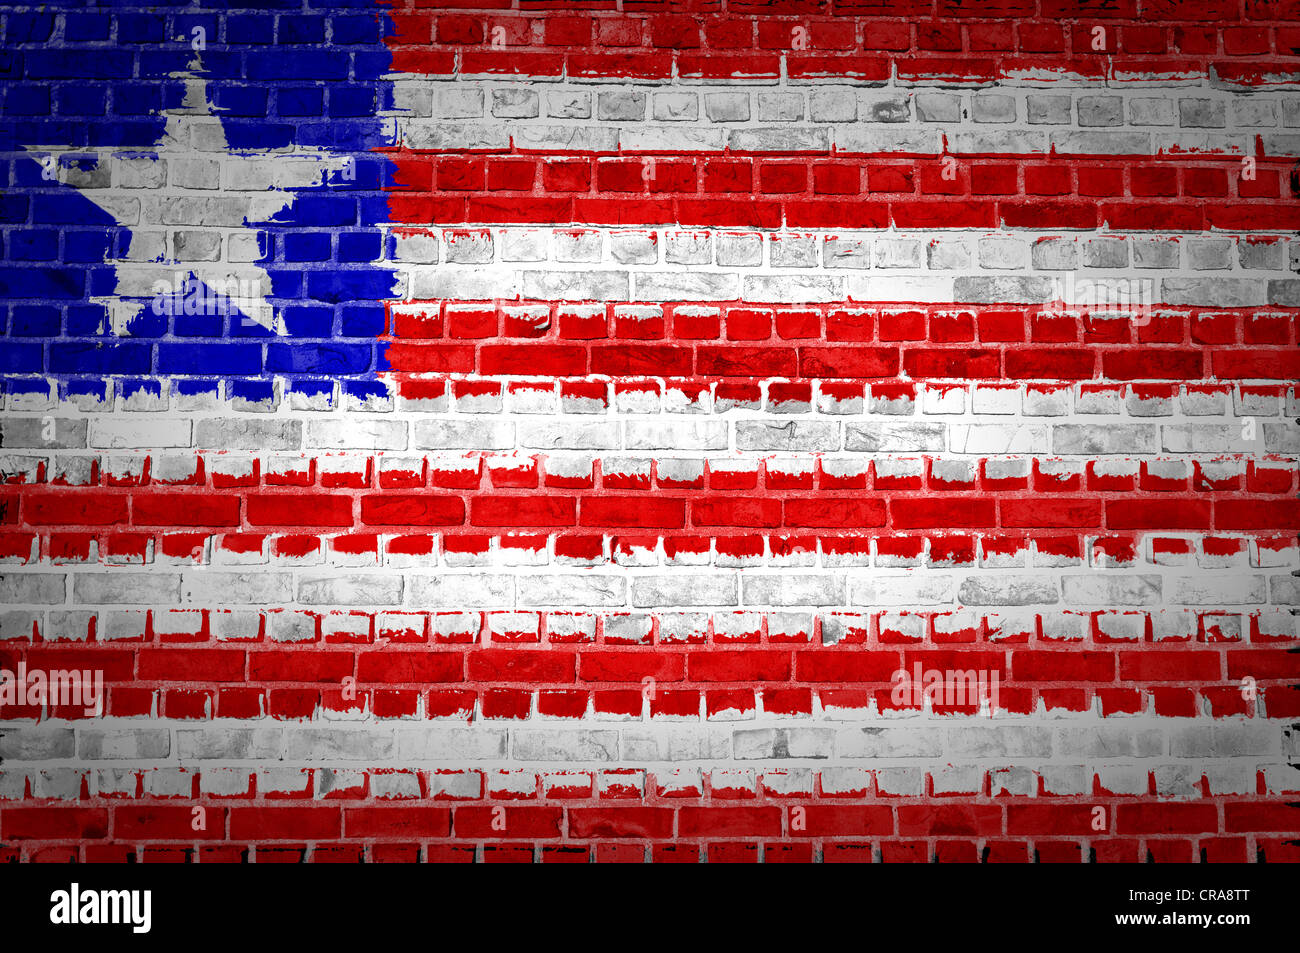 An image of the Liberia flag painted on a brick wall in an urban location - Stock Image